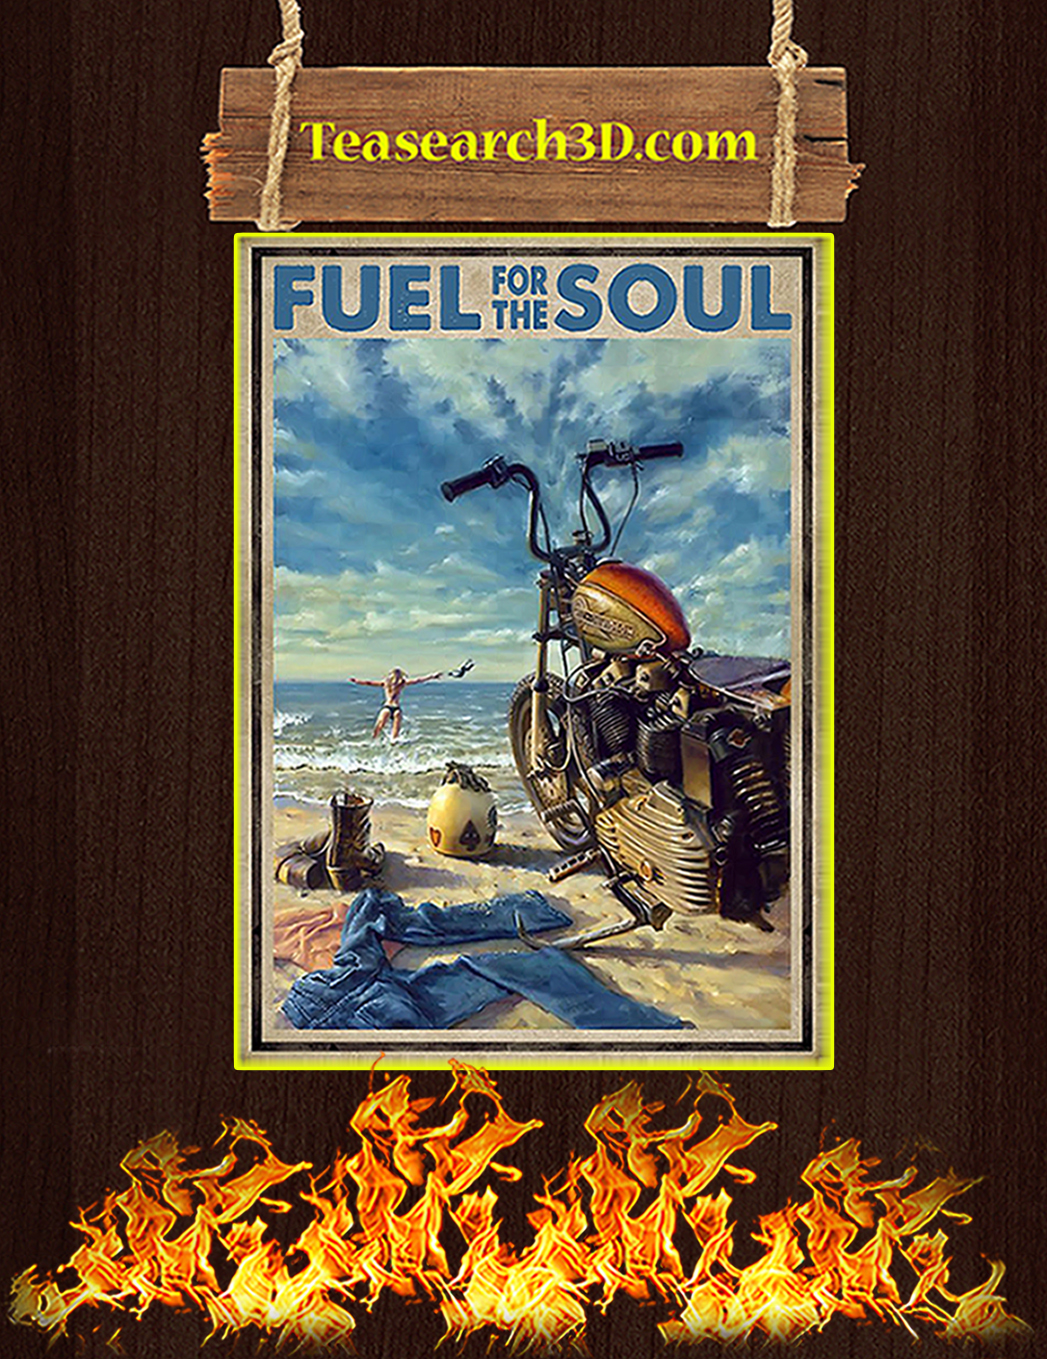 Biker girl fuel for the soul poster A1